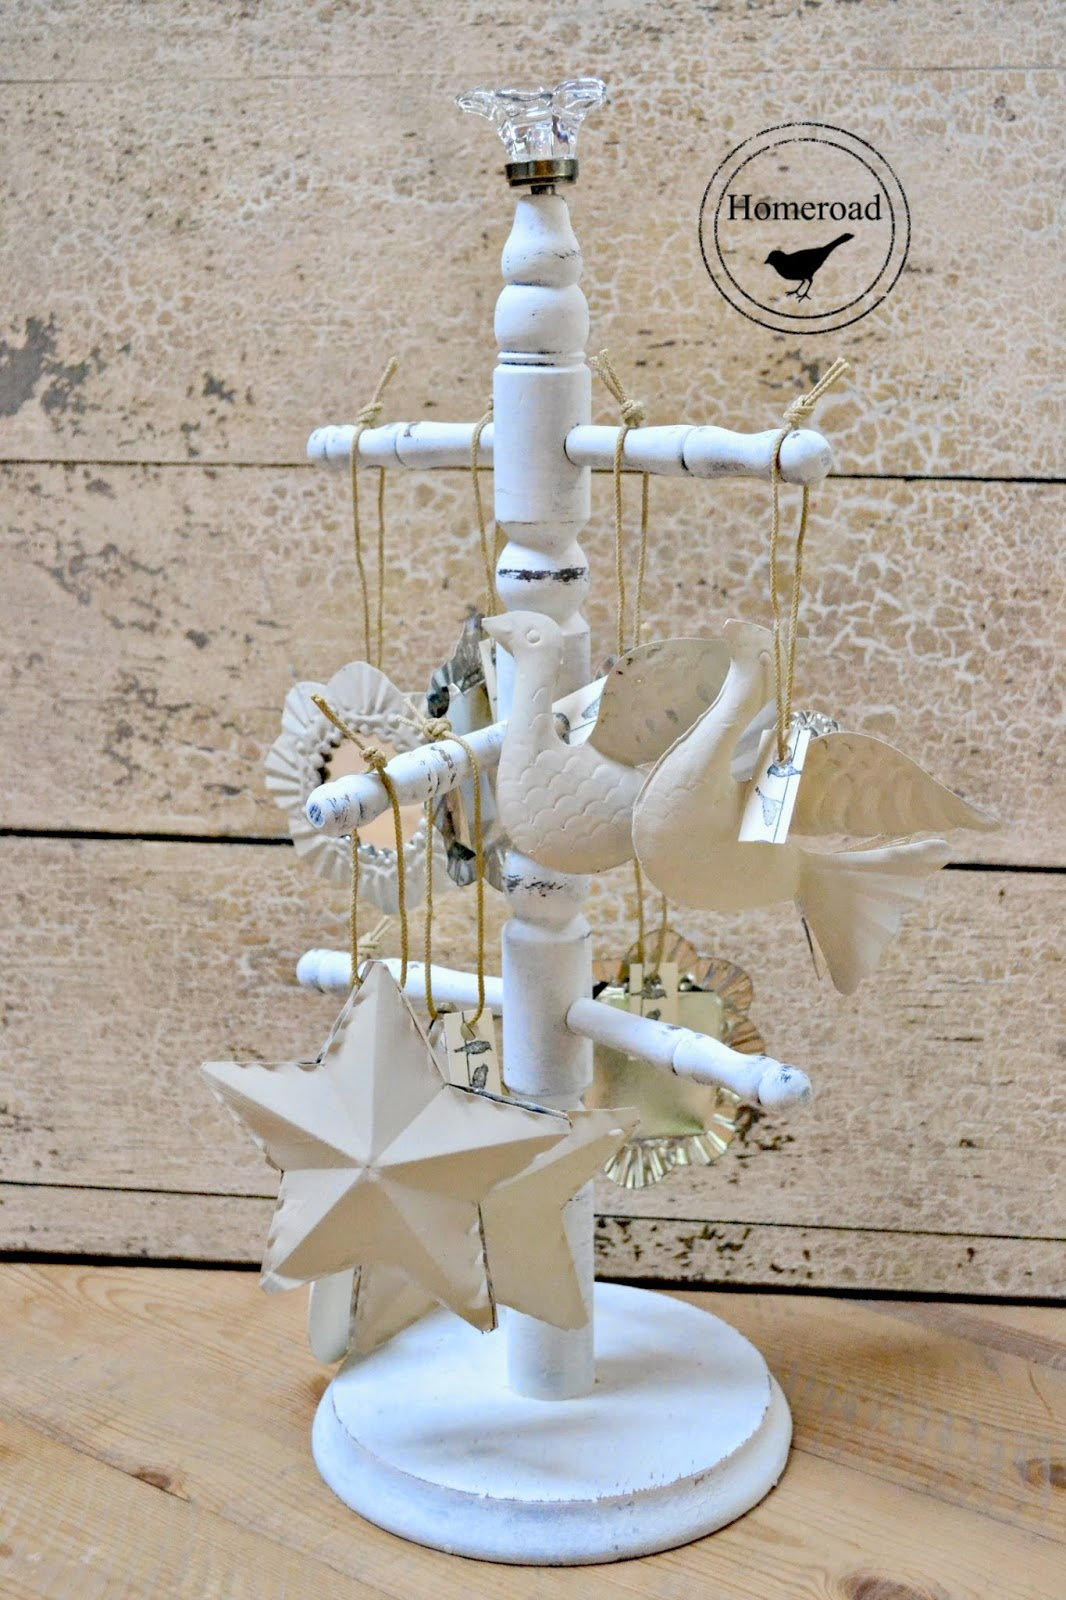 Christmas ornament holders - Chalk Painted Metal Christmas Ornaments Www Homeroad Net